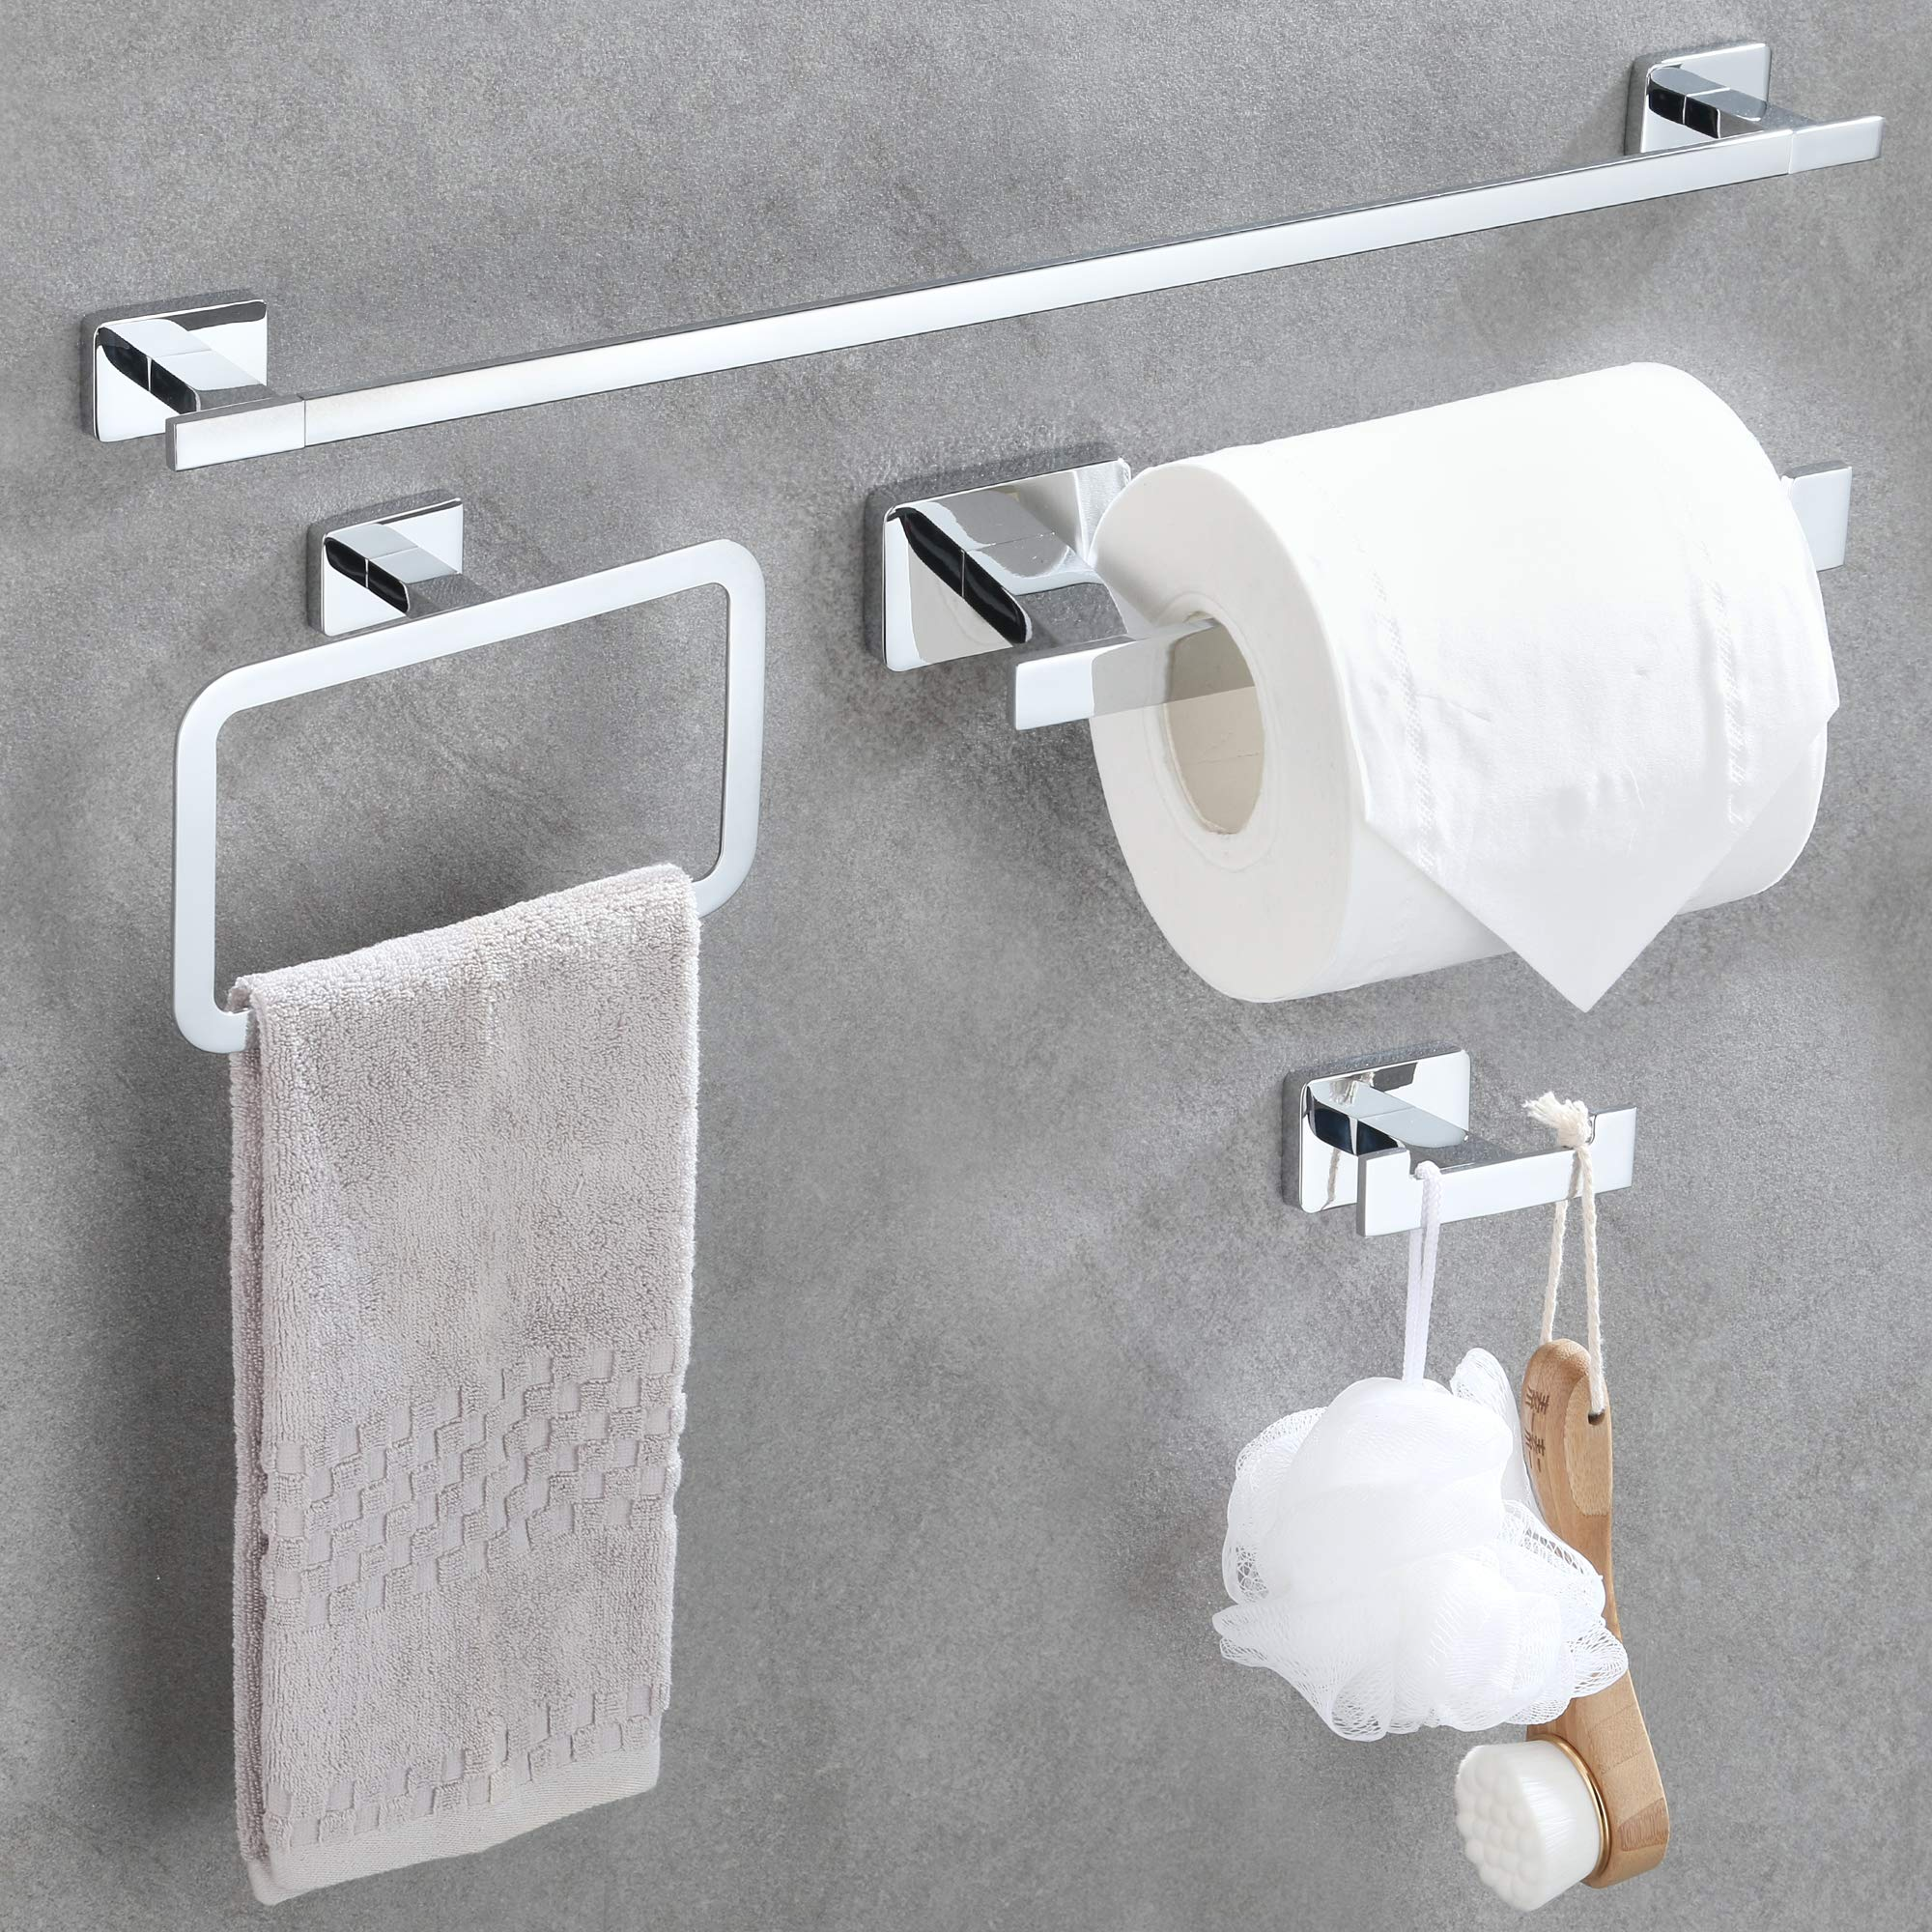 "GERUIKE 4 Piece Bathroom Hardware Accessories Set,Chrome Stainless Steel Towel Bar Sets Wall Mounted - Includes 18"" Towel Bar, Square Towel Ring, Toilet Paper Holder, Robe Towel Hook"